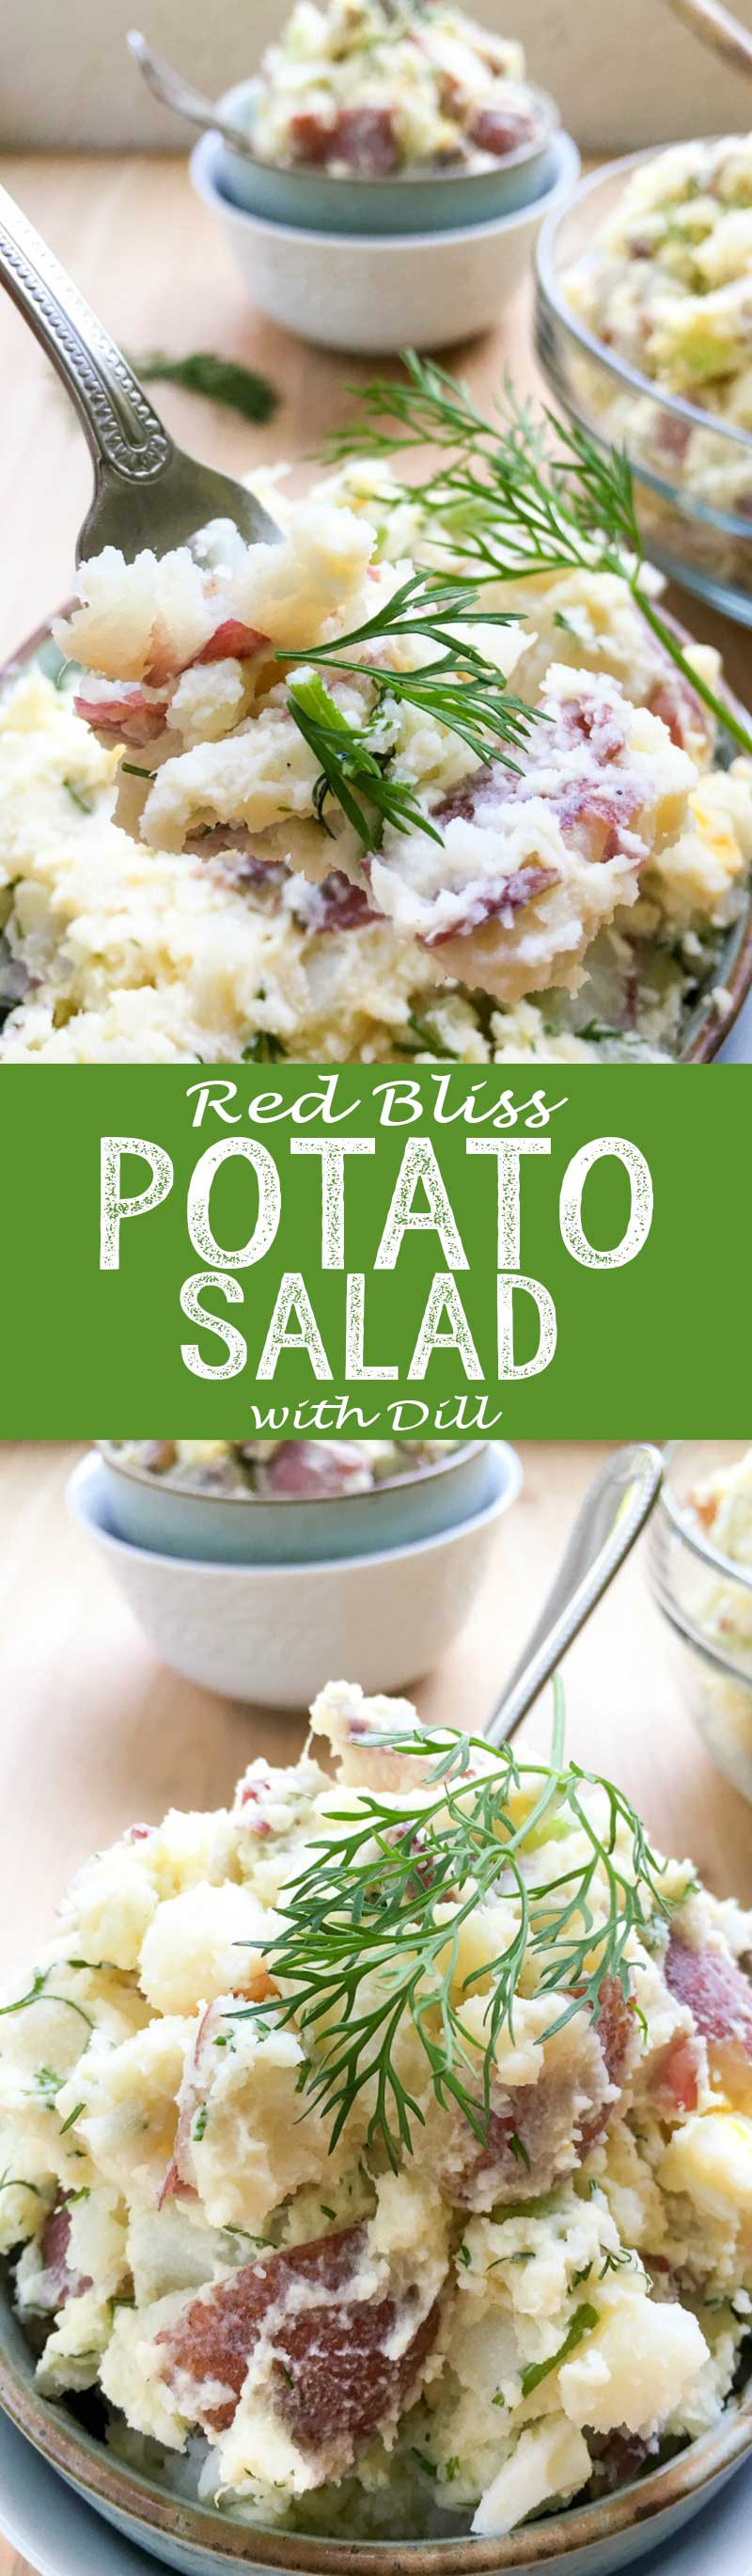 Red Bliss Potato Salad  Red Bliss Potato Salad with Dill Easy Peasy Meals